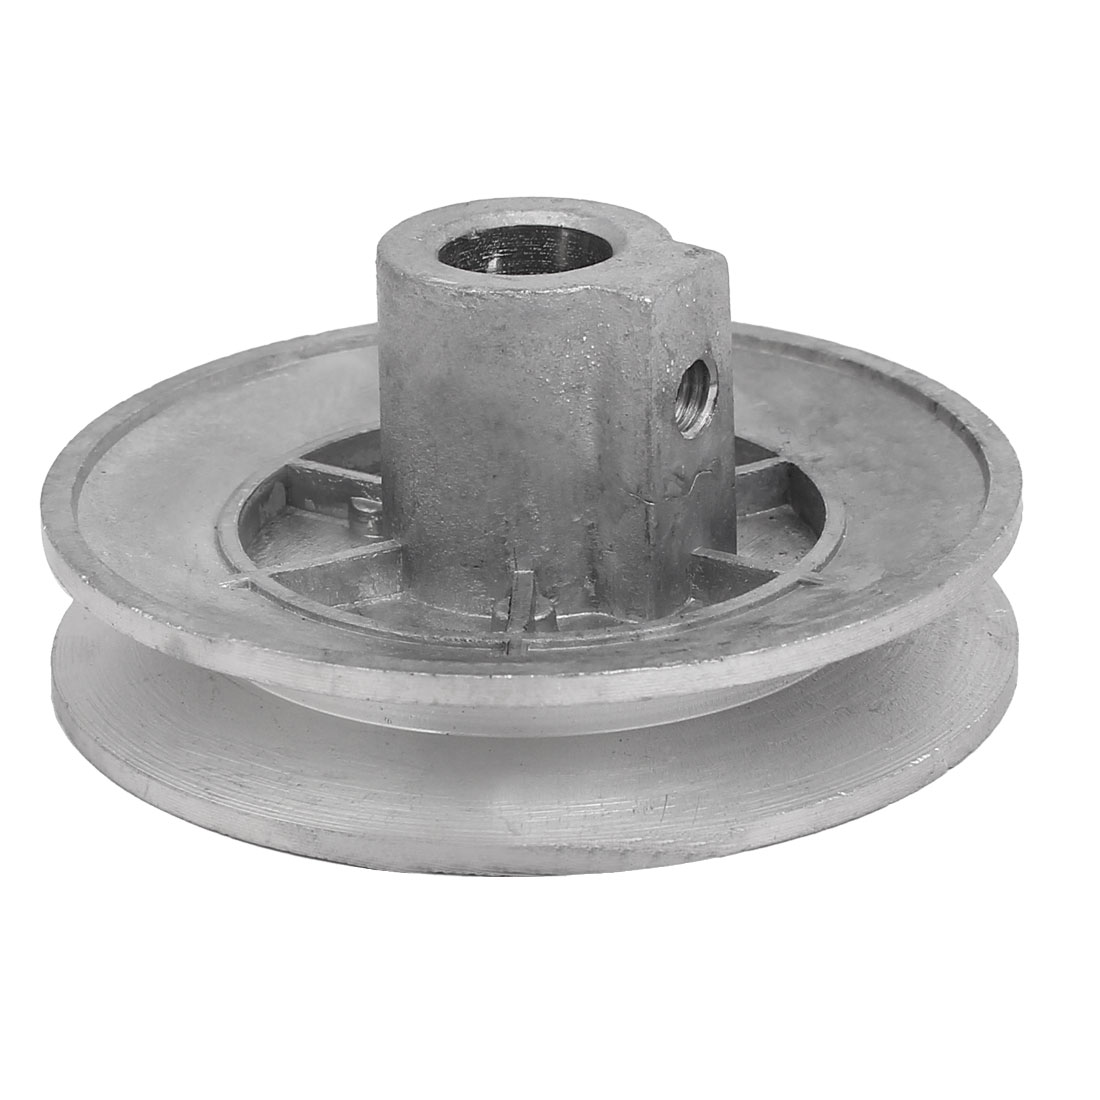 69mm x 30mm Metal Washing Machine Drive Pulley Wheel Silver Tone